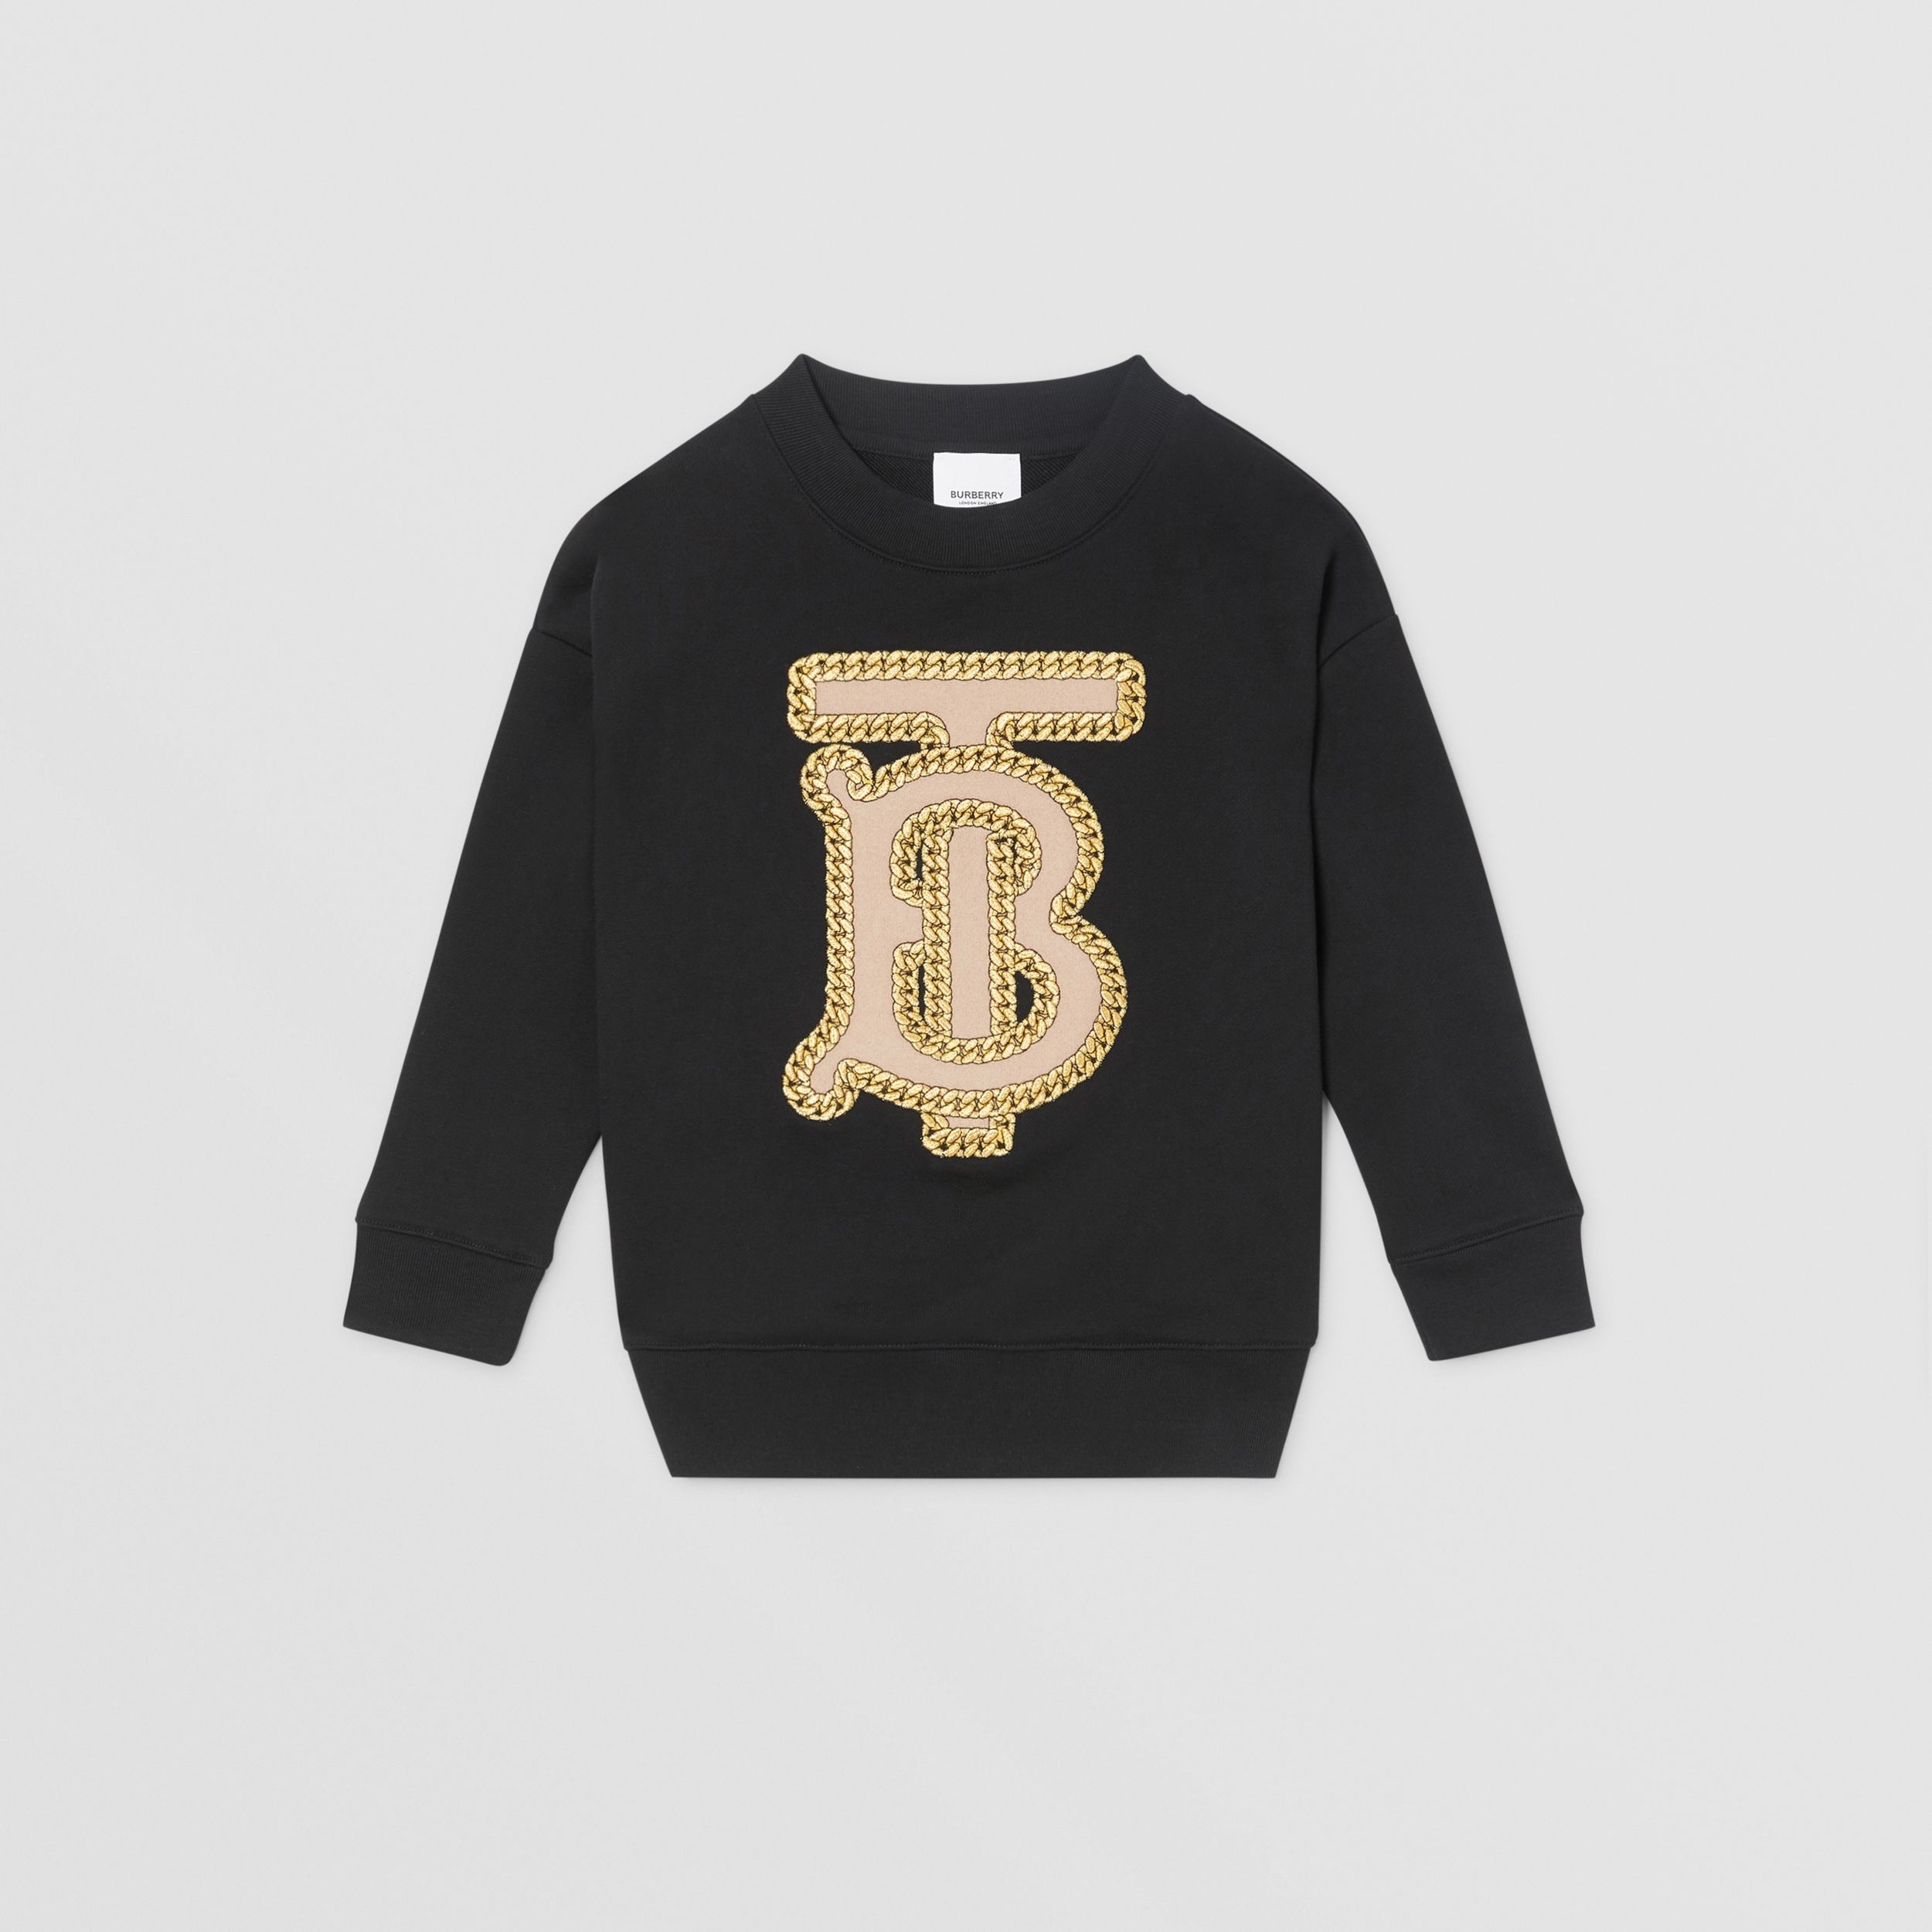 Sweat-shirt en coton Monogram brodé (Noir) | Burberry Canada - 1